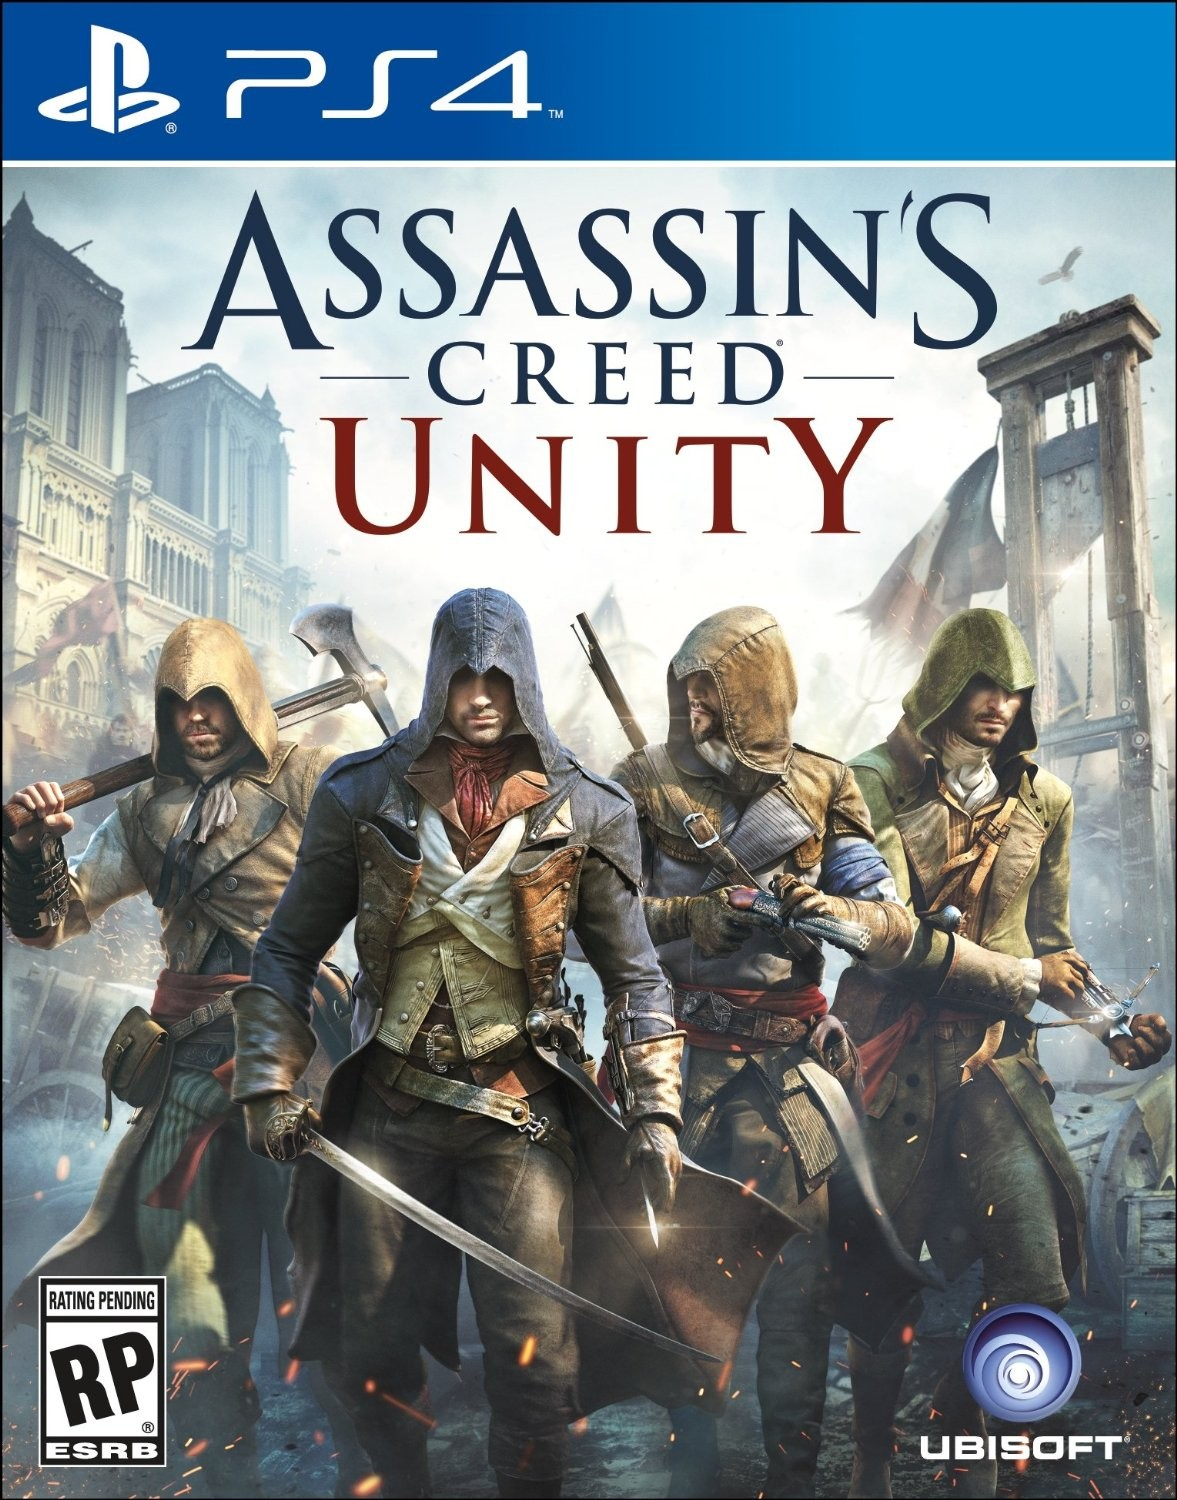 Assassin's Creed: Unity 刺客信条:大革命